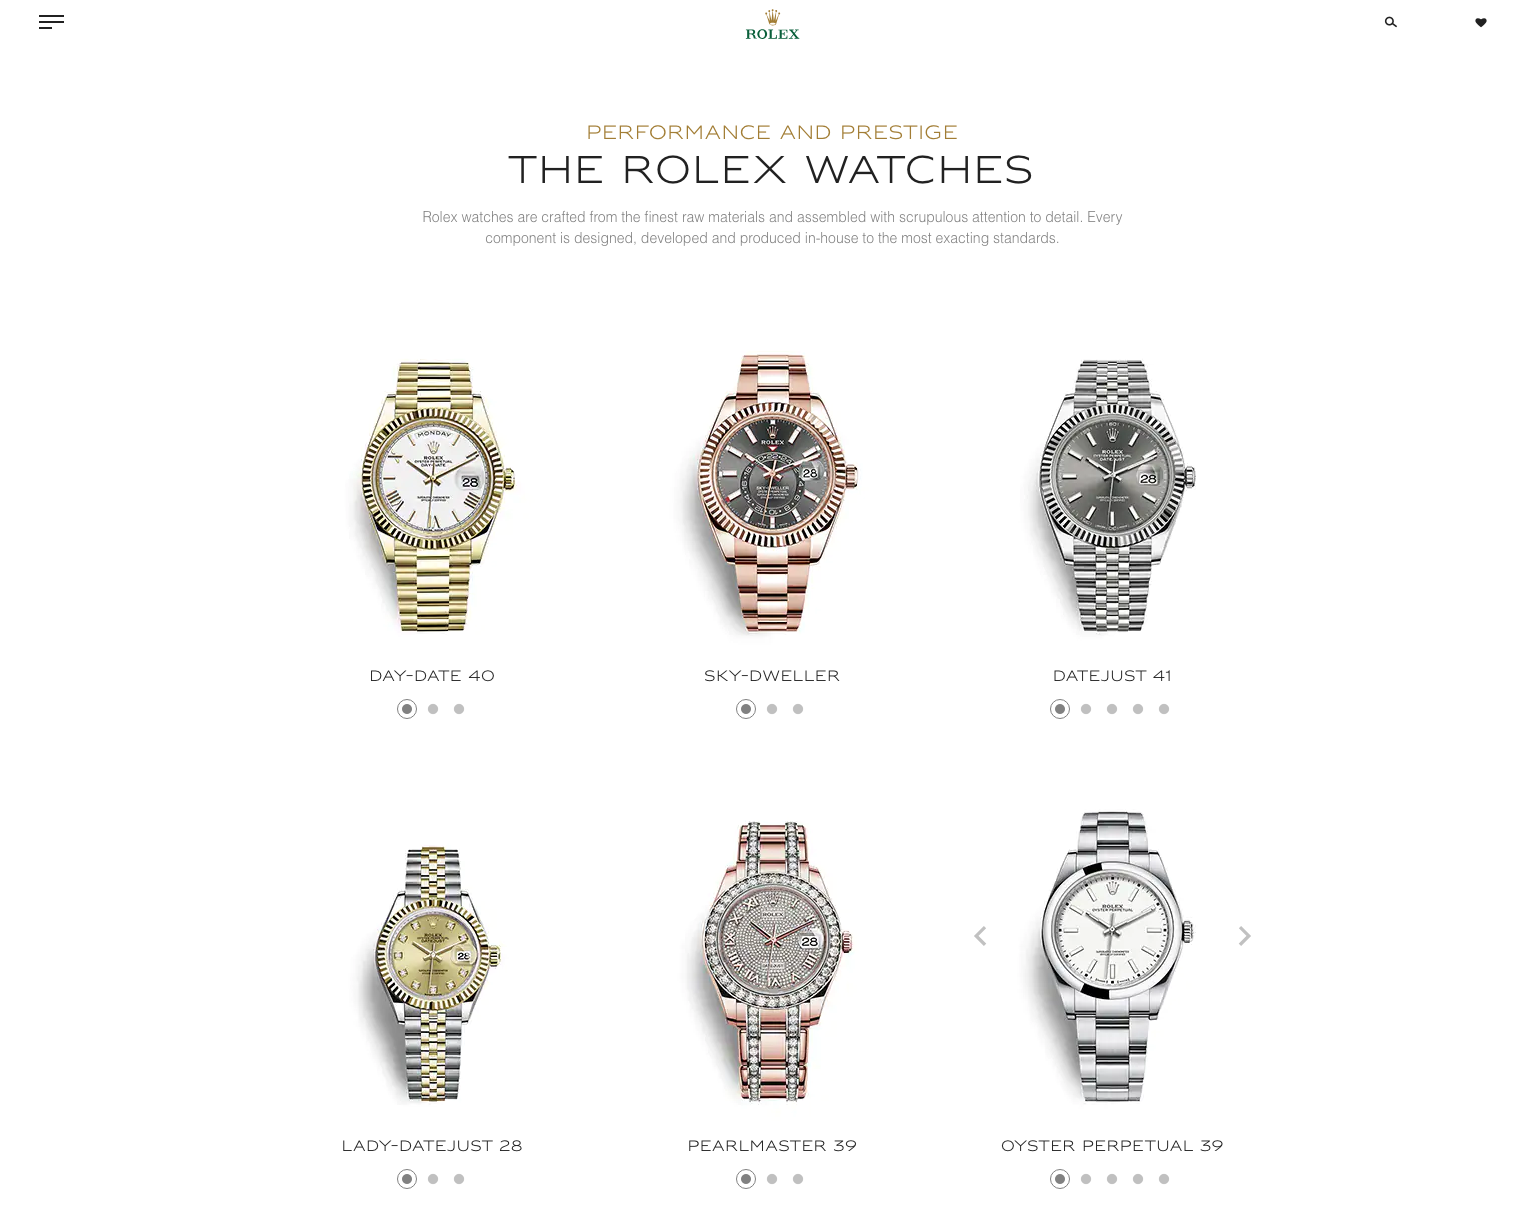 rolex website design